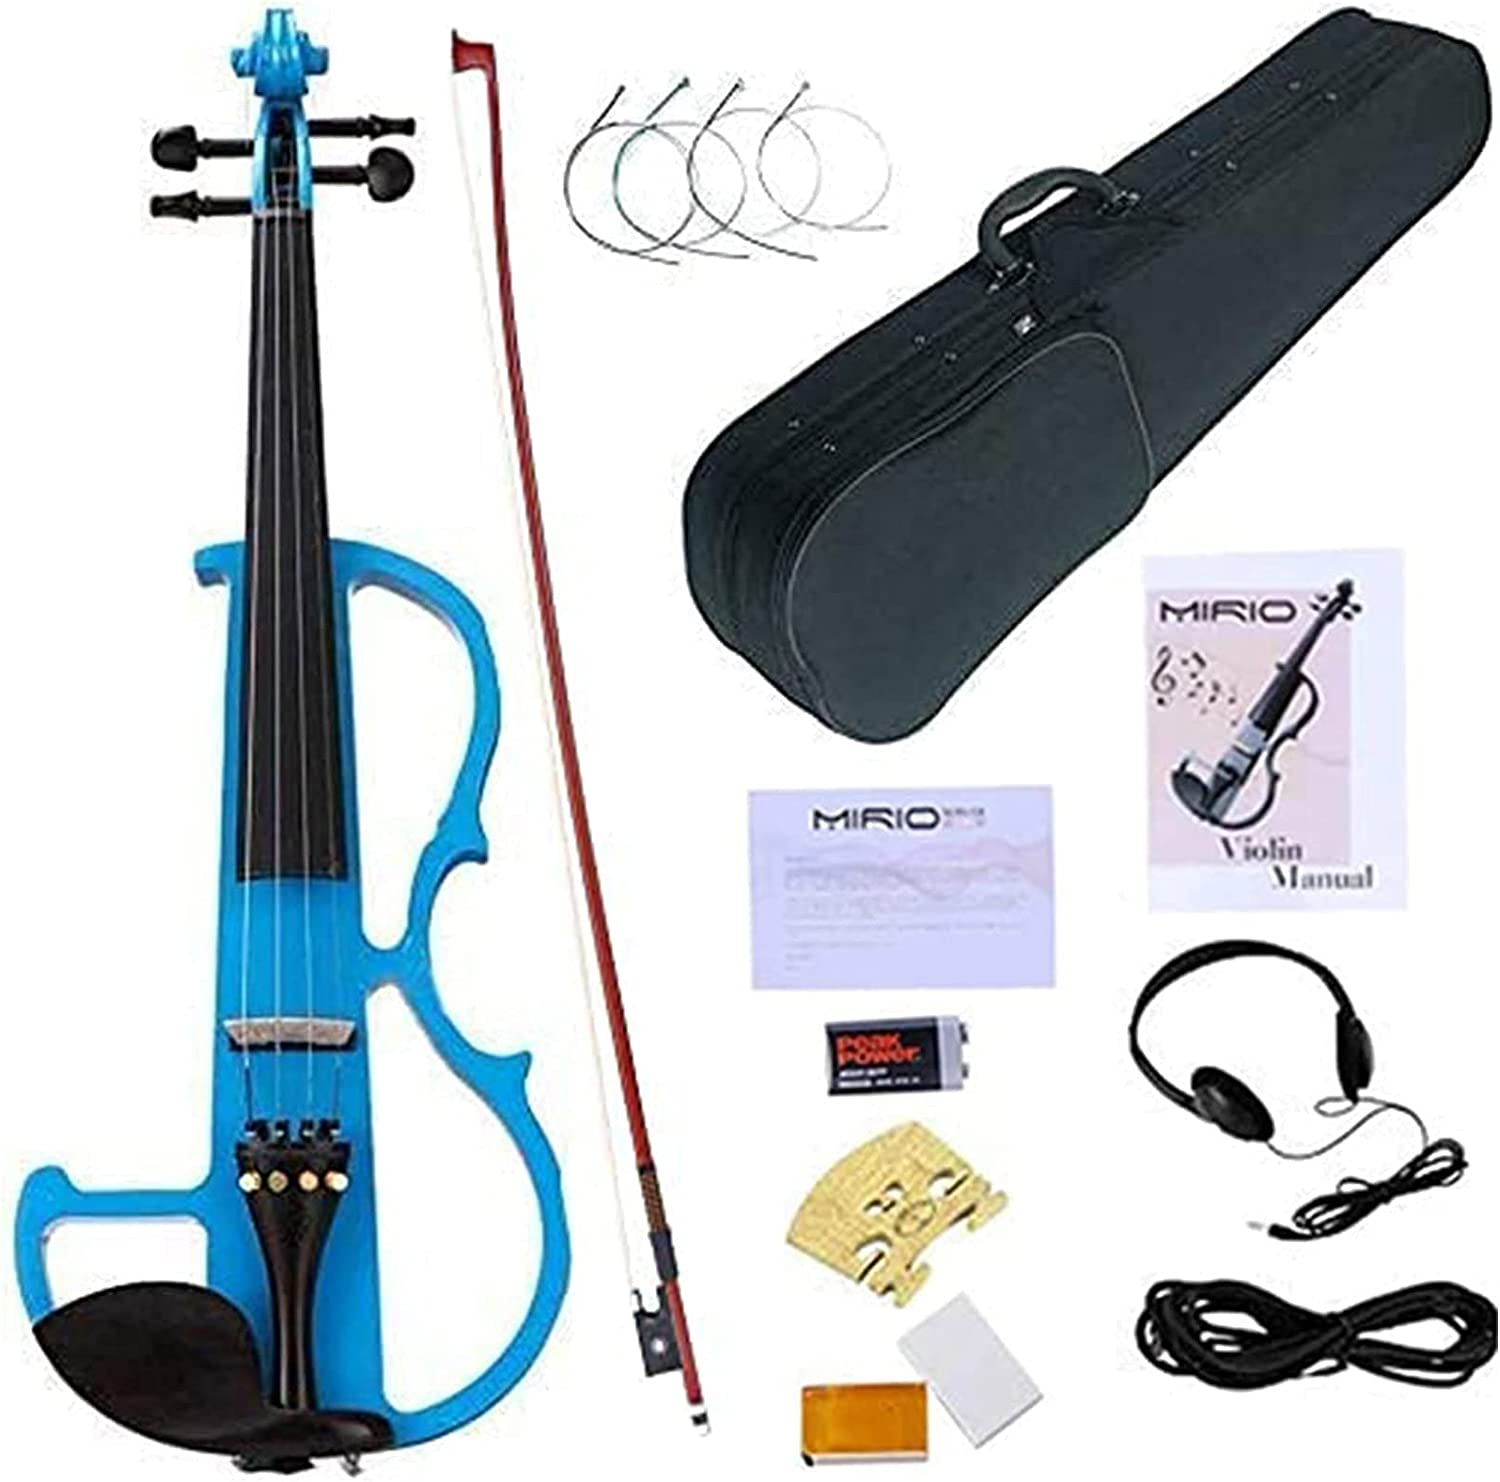 MIRIO Electronic Violin Blue Purchase Full Size Vintage Solid Dedication 4